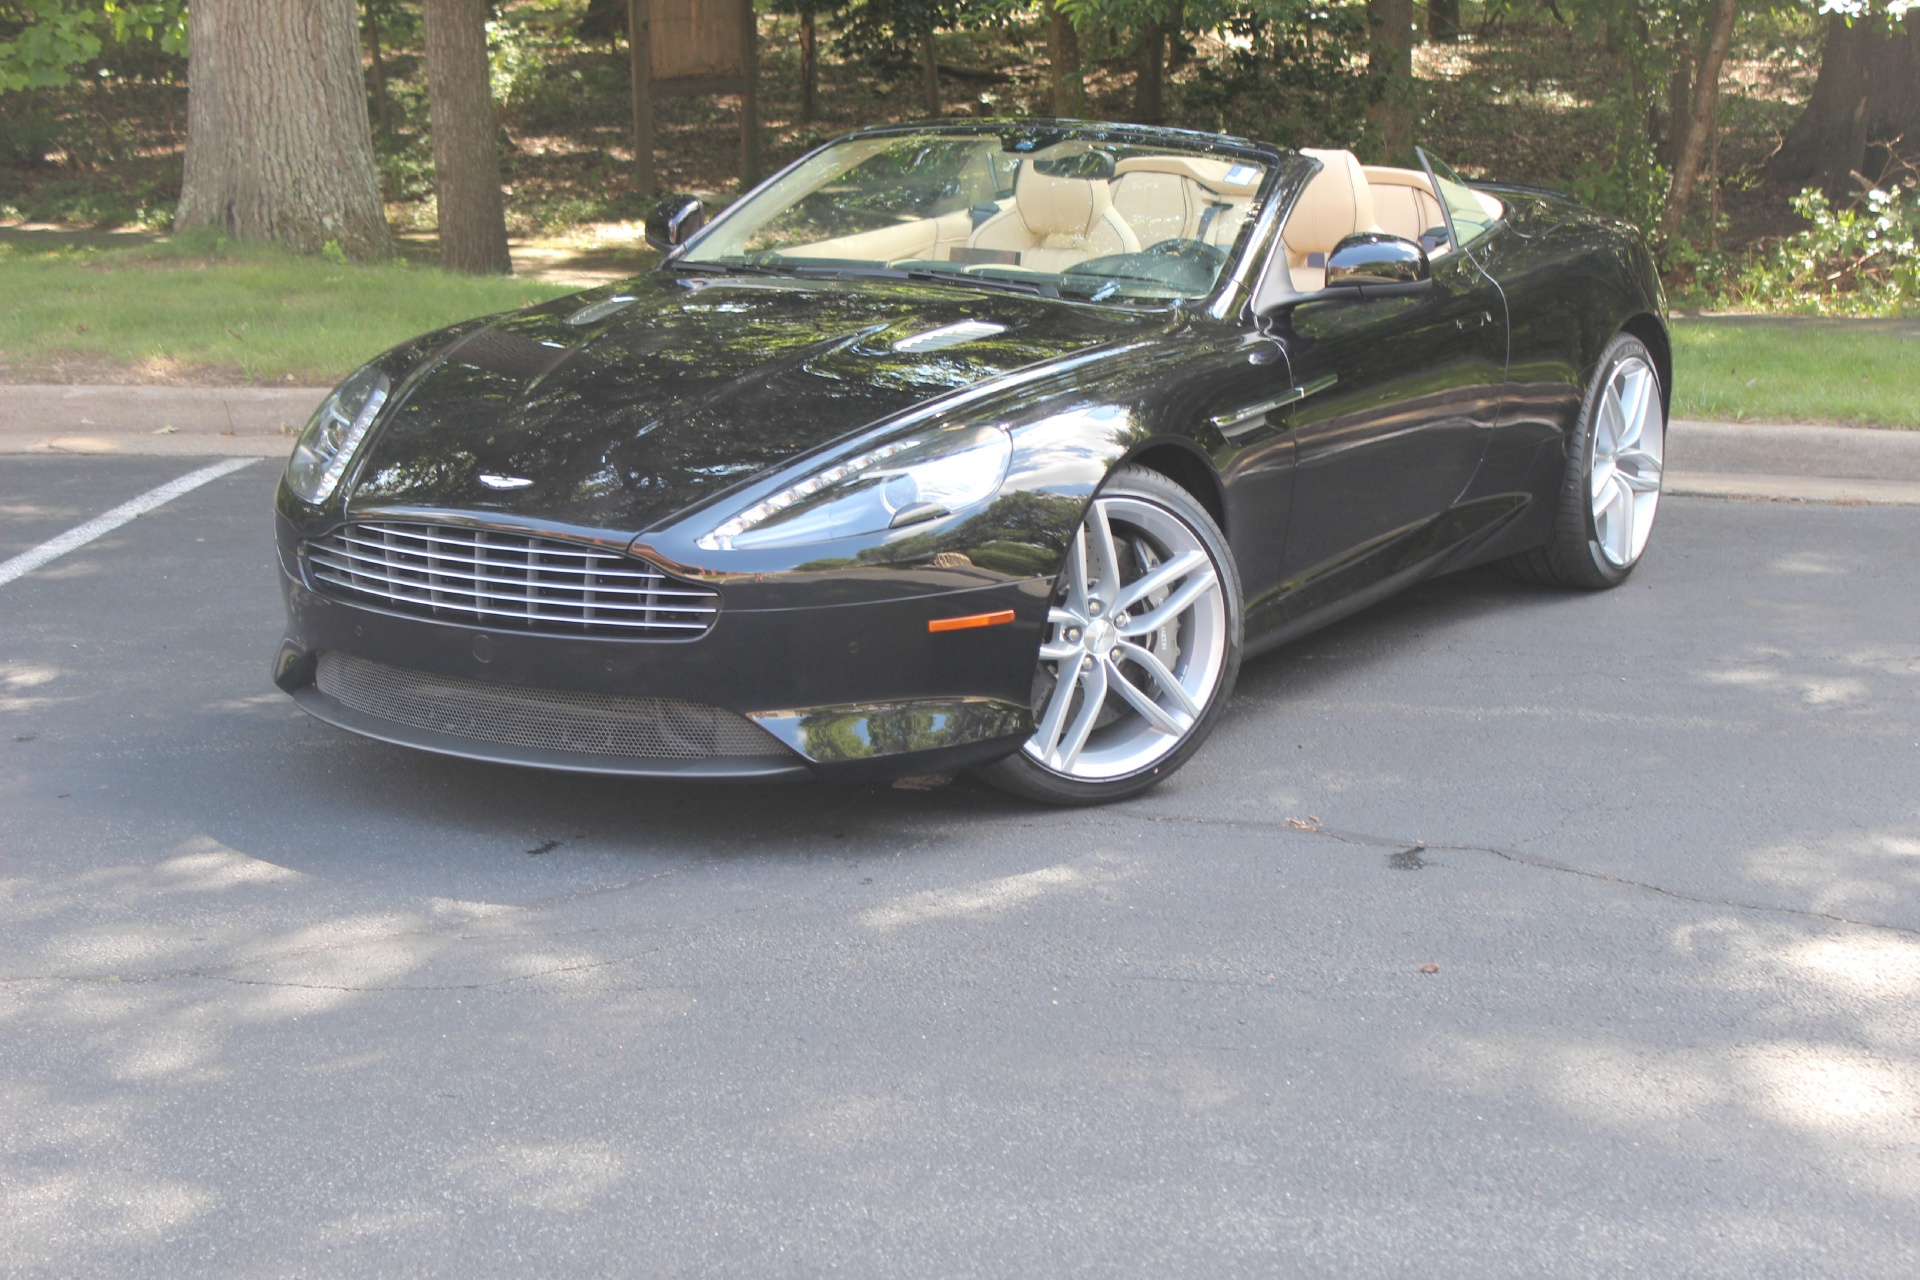 2015 aston martin db9 volante stock 5b16619 for sale near vienna va. Black Bedroom Furniture Sets. Home Design Ideas